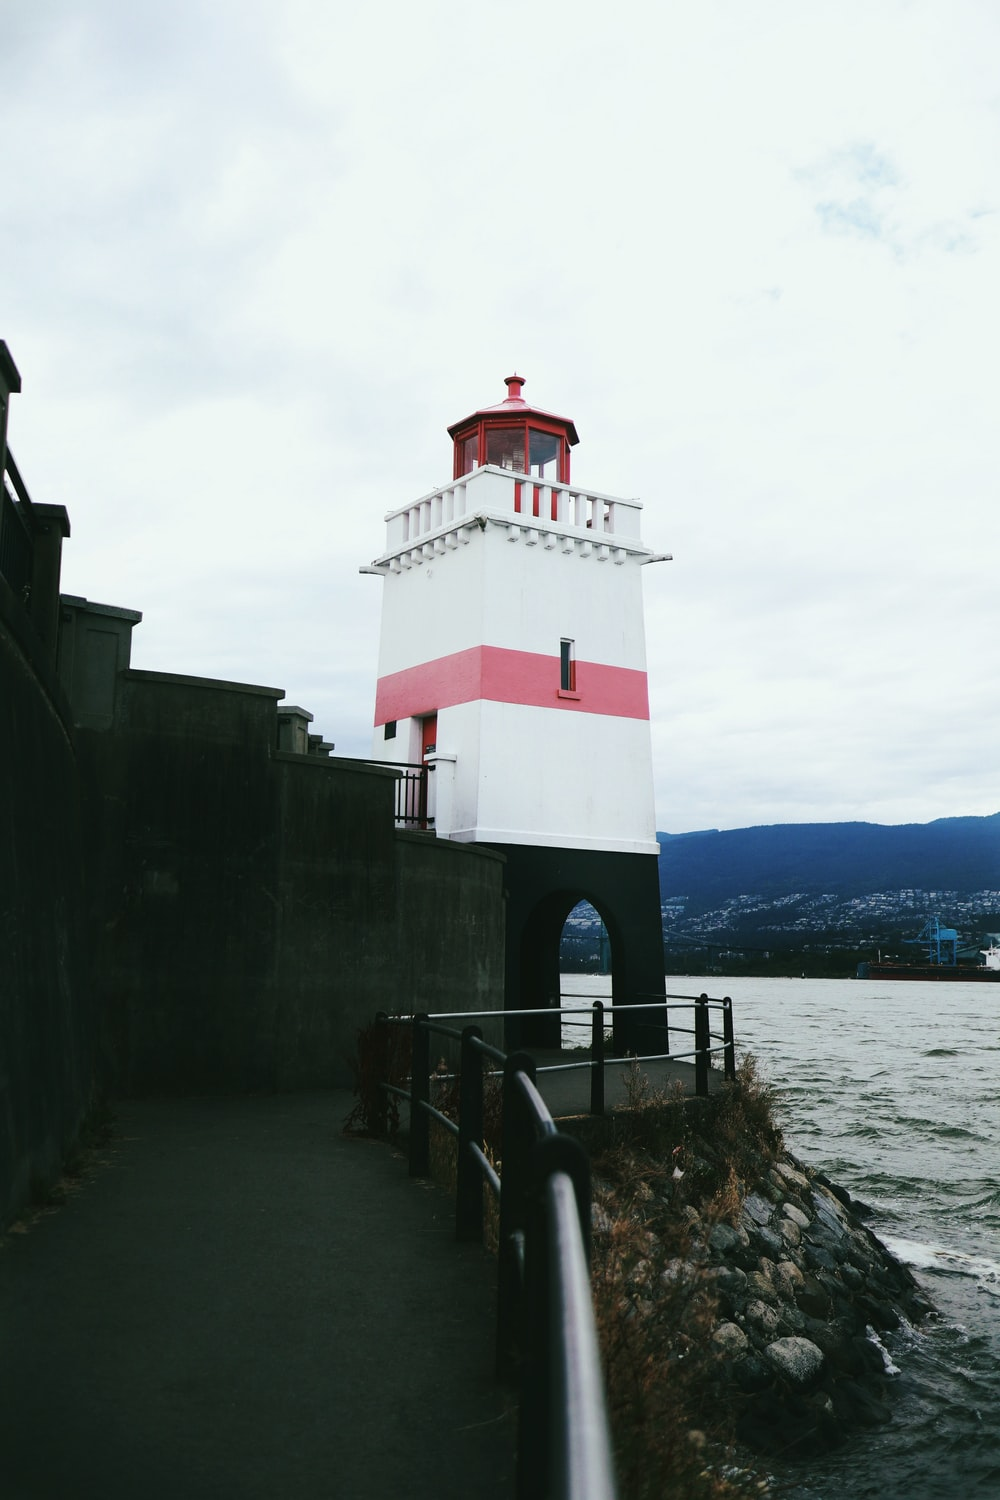 red and white concrete lighthouse near body of water during daytime